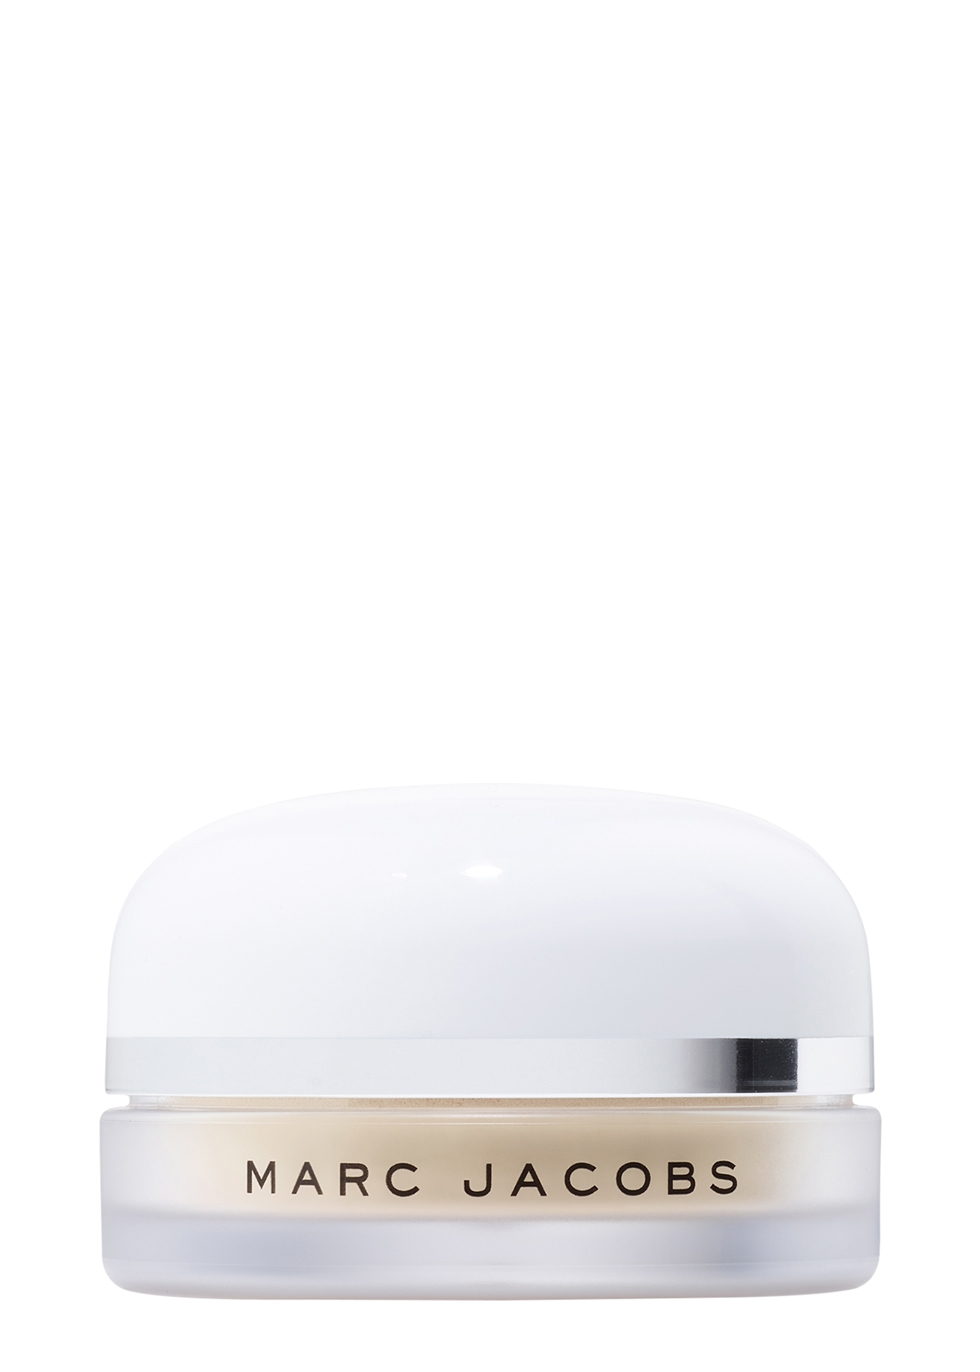 Finish Line Perfecting Coconut Setting Powder - MARC JACOBS BEAUTY